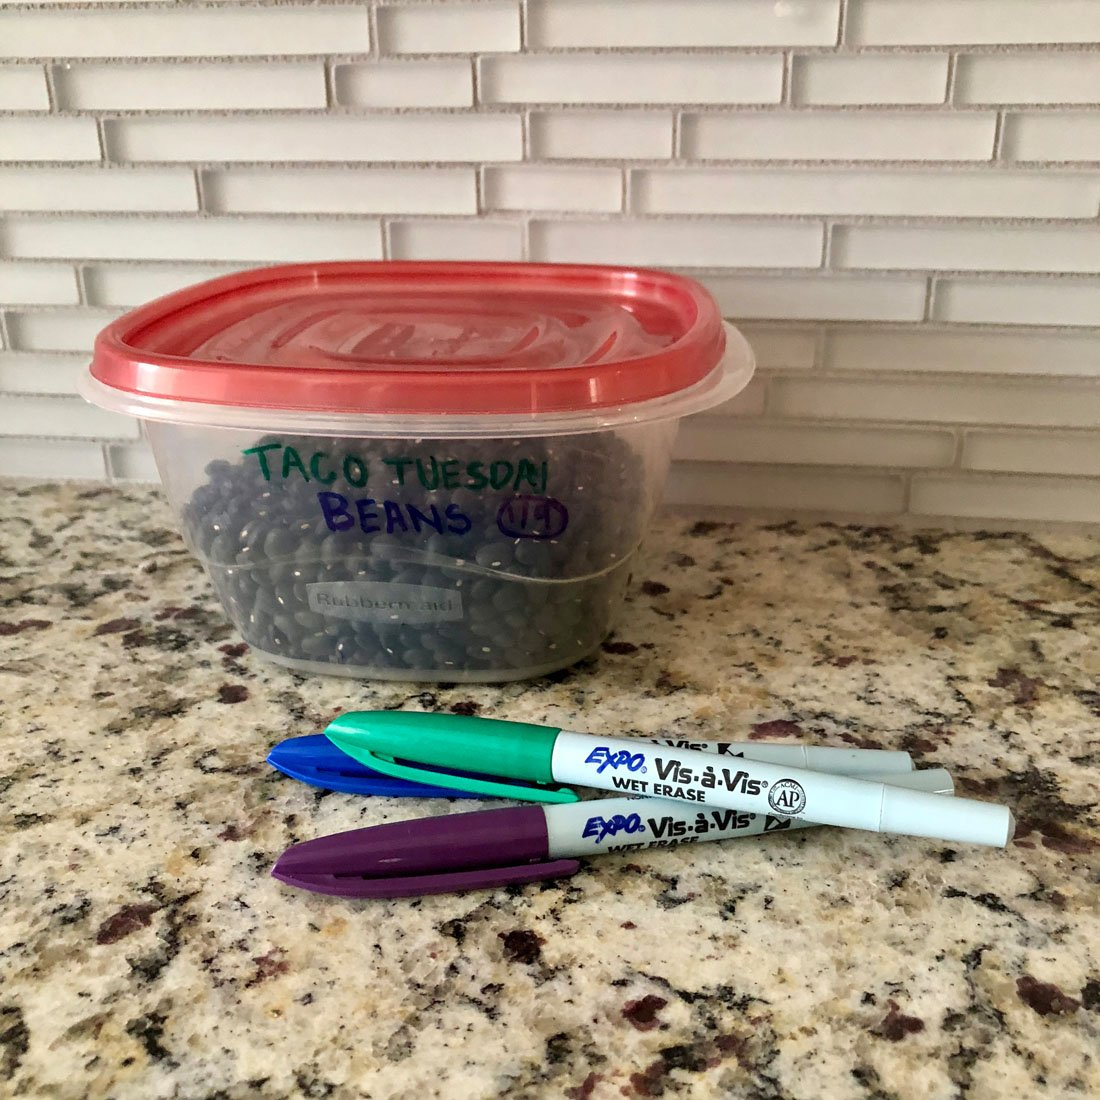 labeled-leftovers-container-on-counter-with-expo-vis-a-vis-markers.jpg